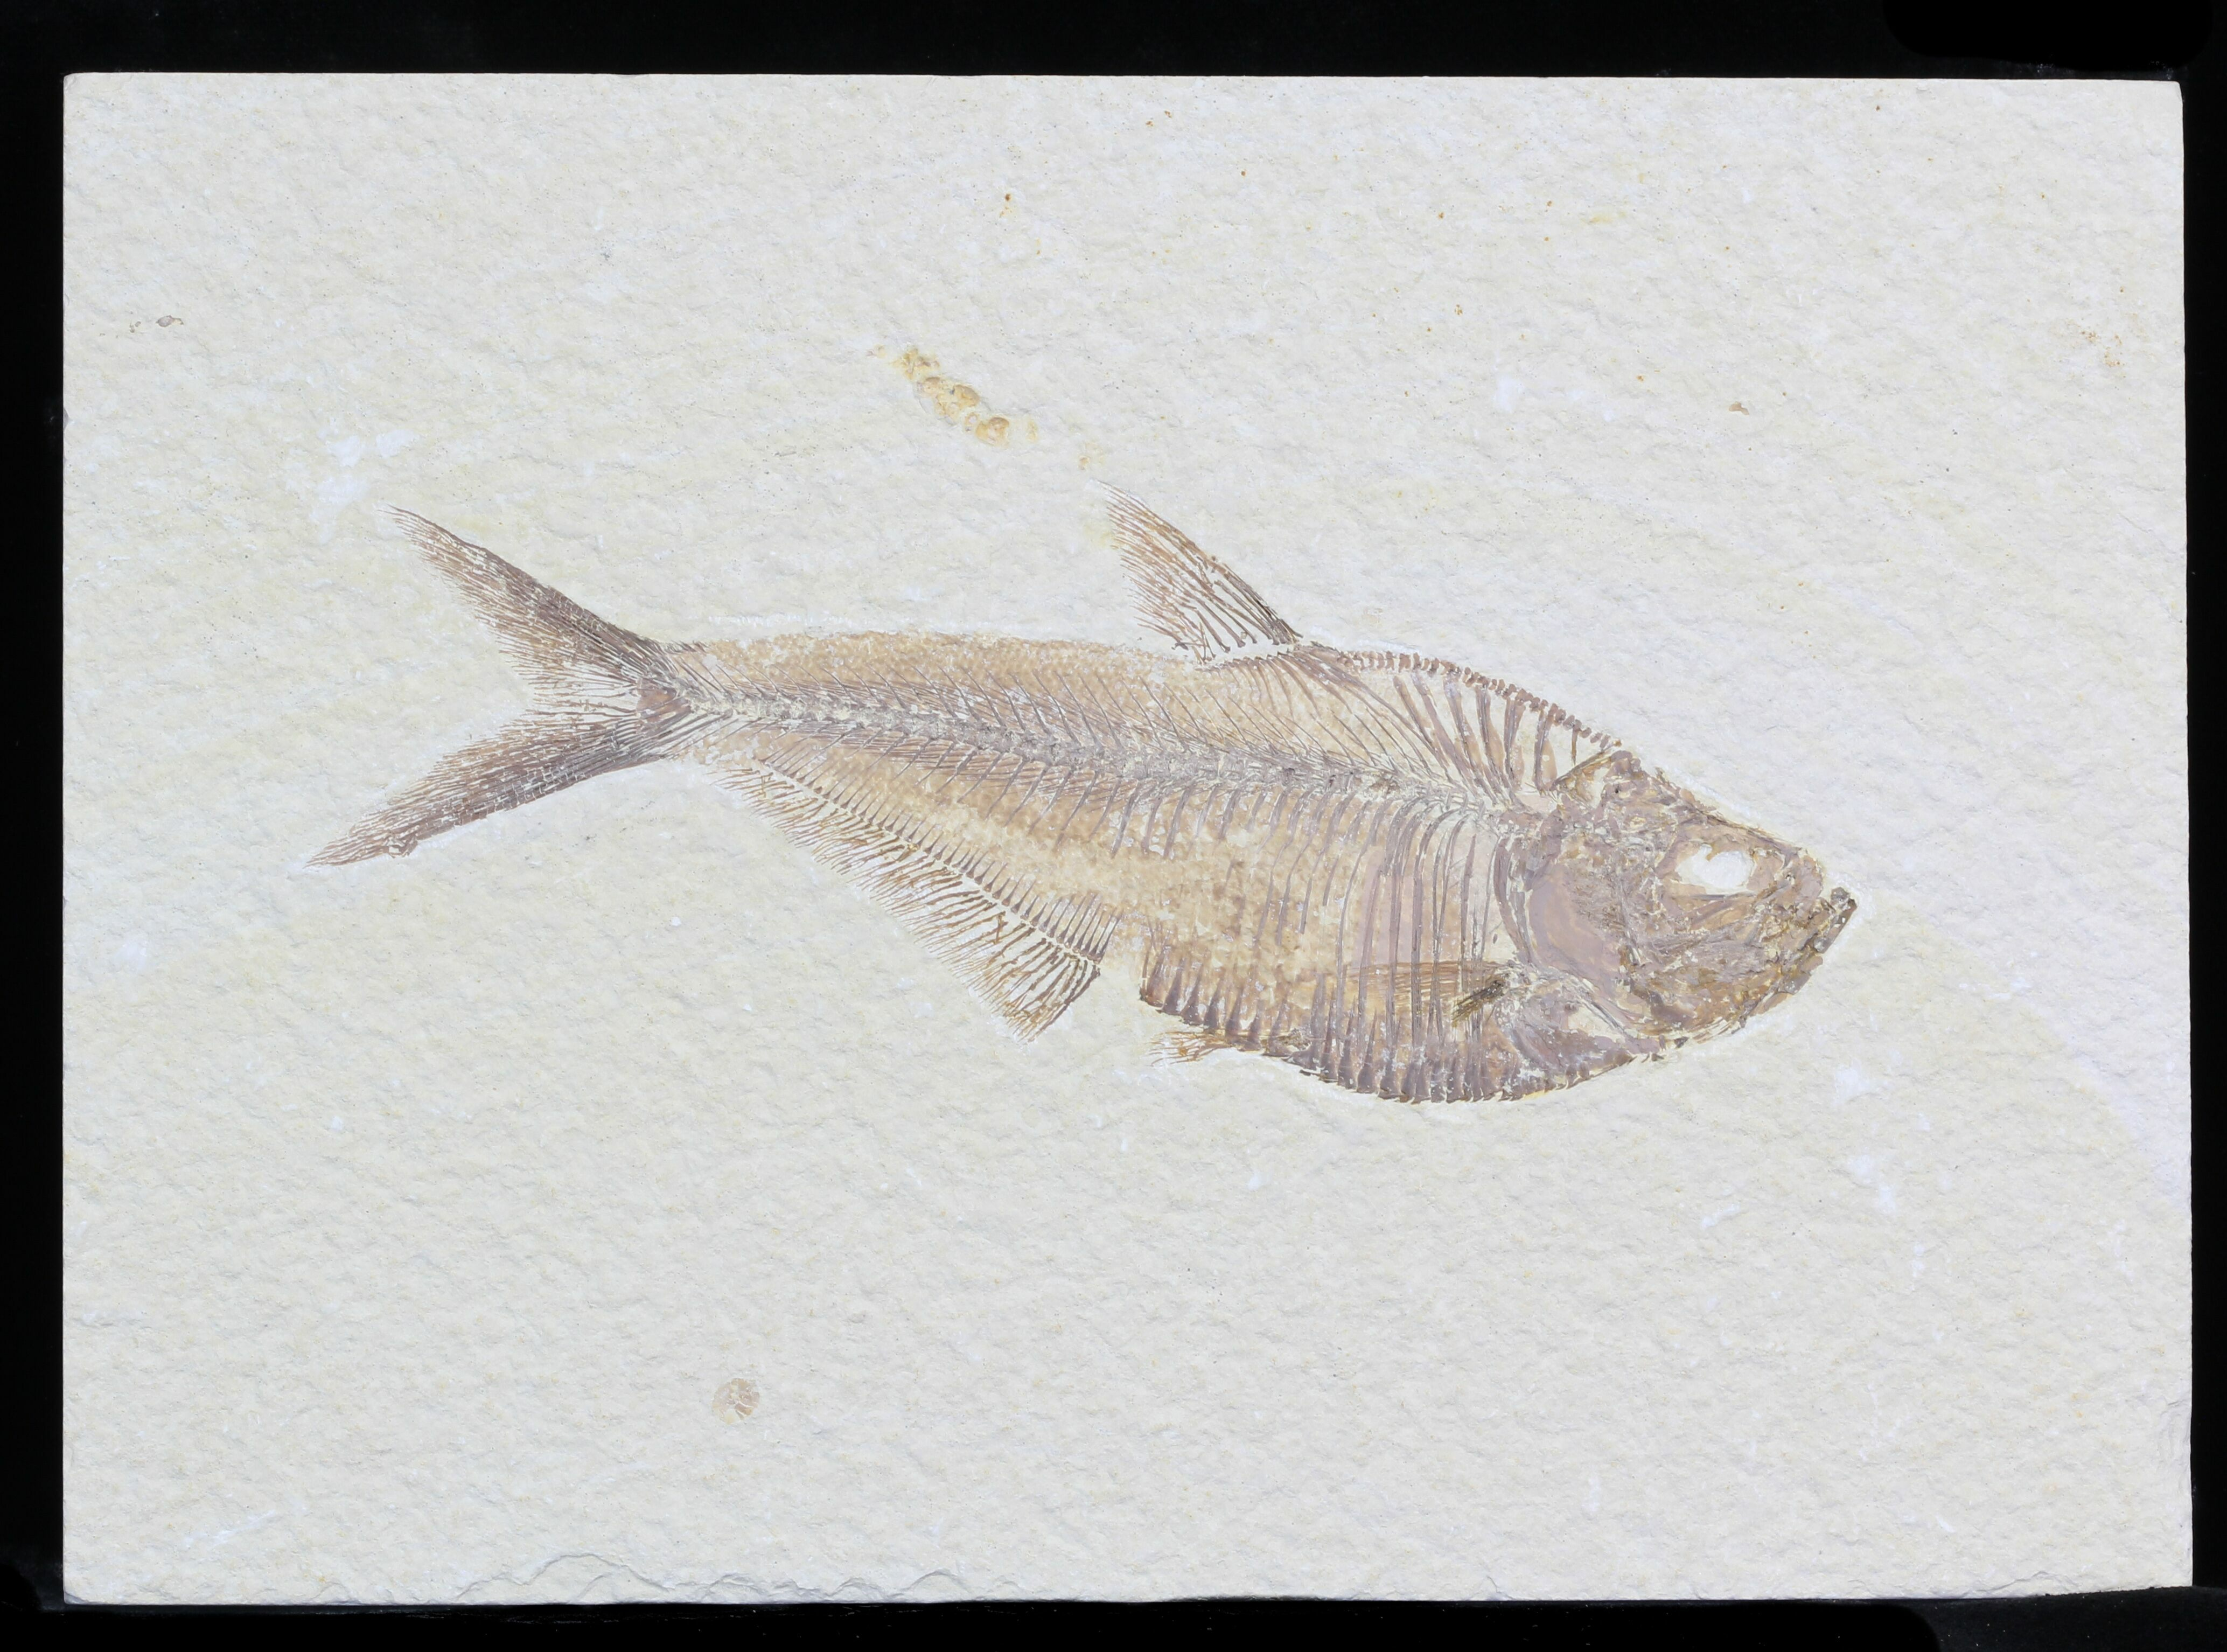 Detailed 6 diplomystus fish fossil from wyoming for sale for Fish fossils for sale